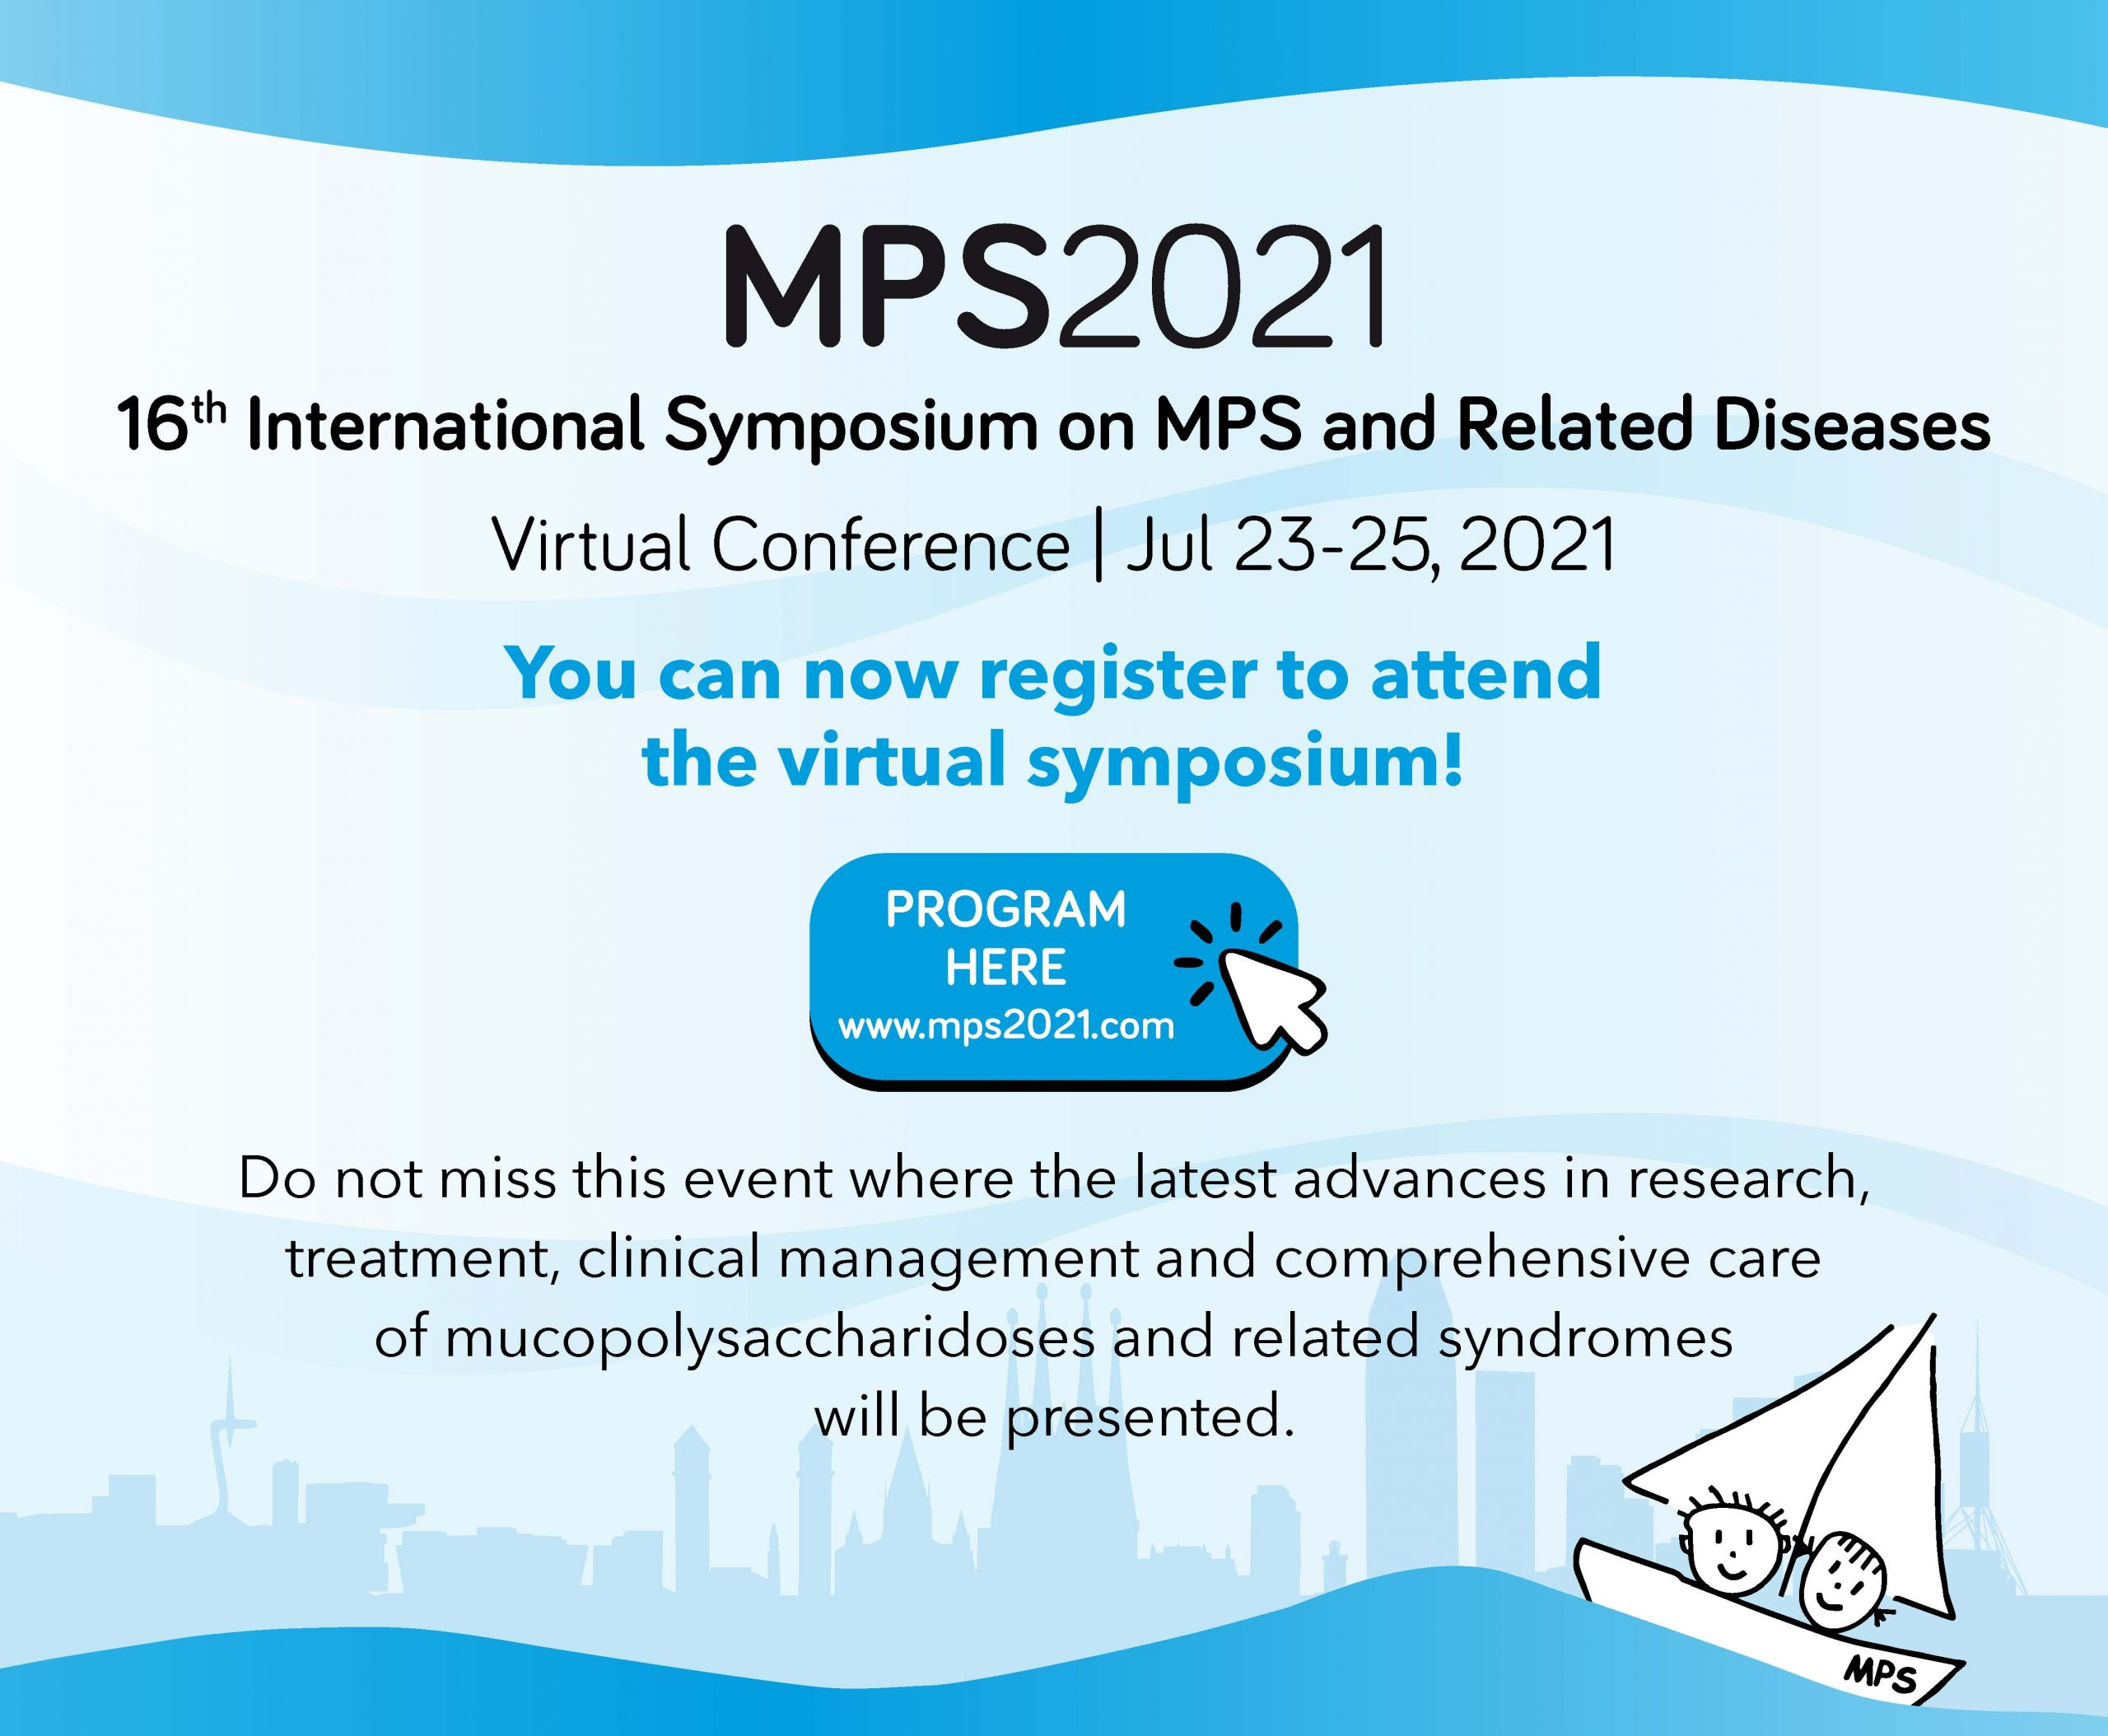 MPS 2021- 16th International Symposium on MPS and Related Diseases @ Virtual